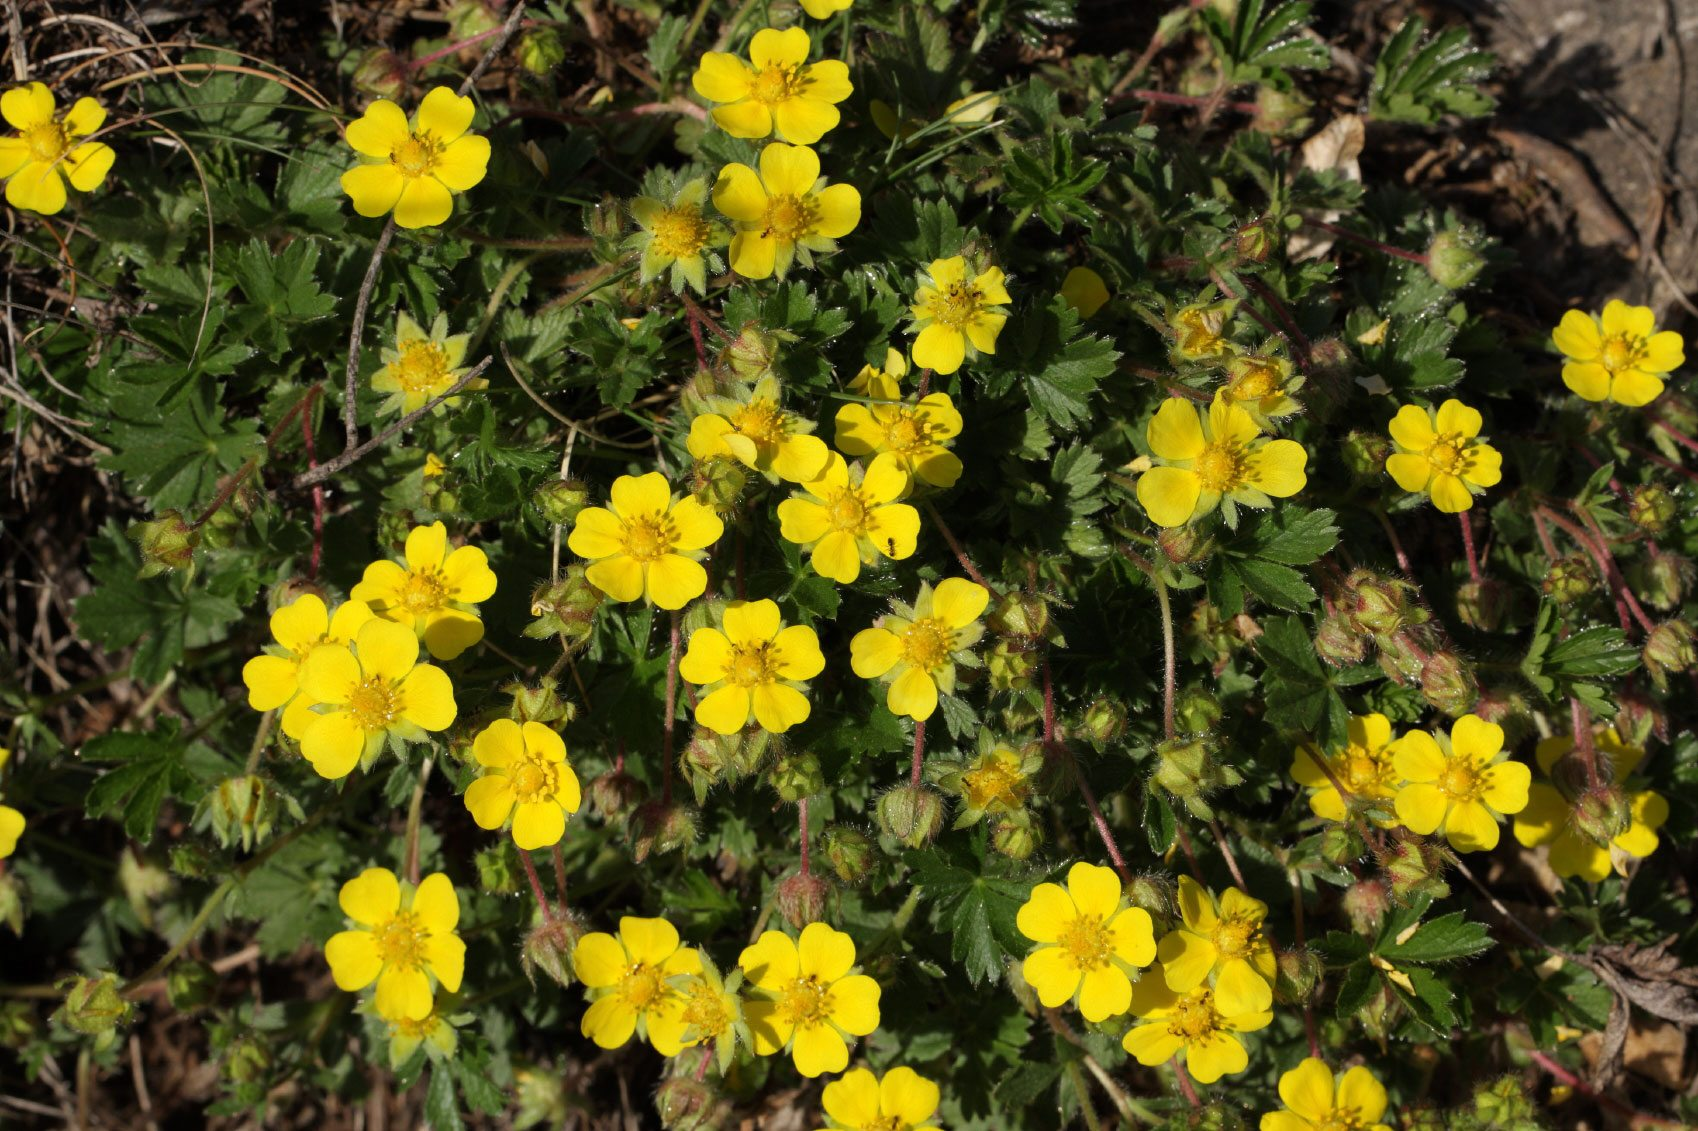 Types of creeping potentilla tips for growing creeping cinquefoil types of creeping potentilla tips for growing creeping cinquefoil plants mightylinksfo